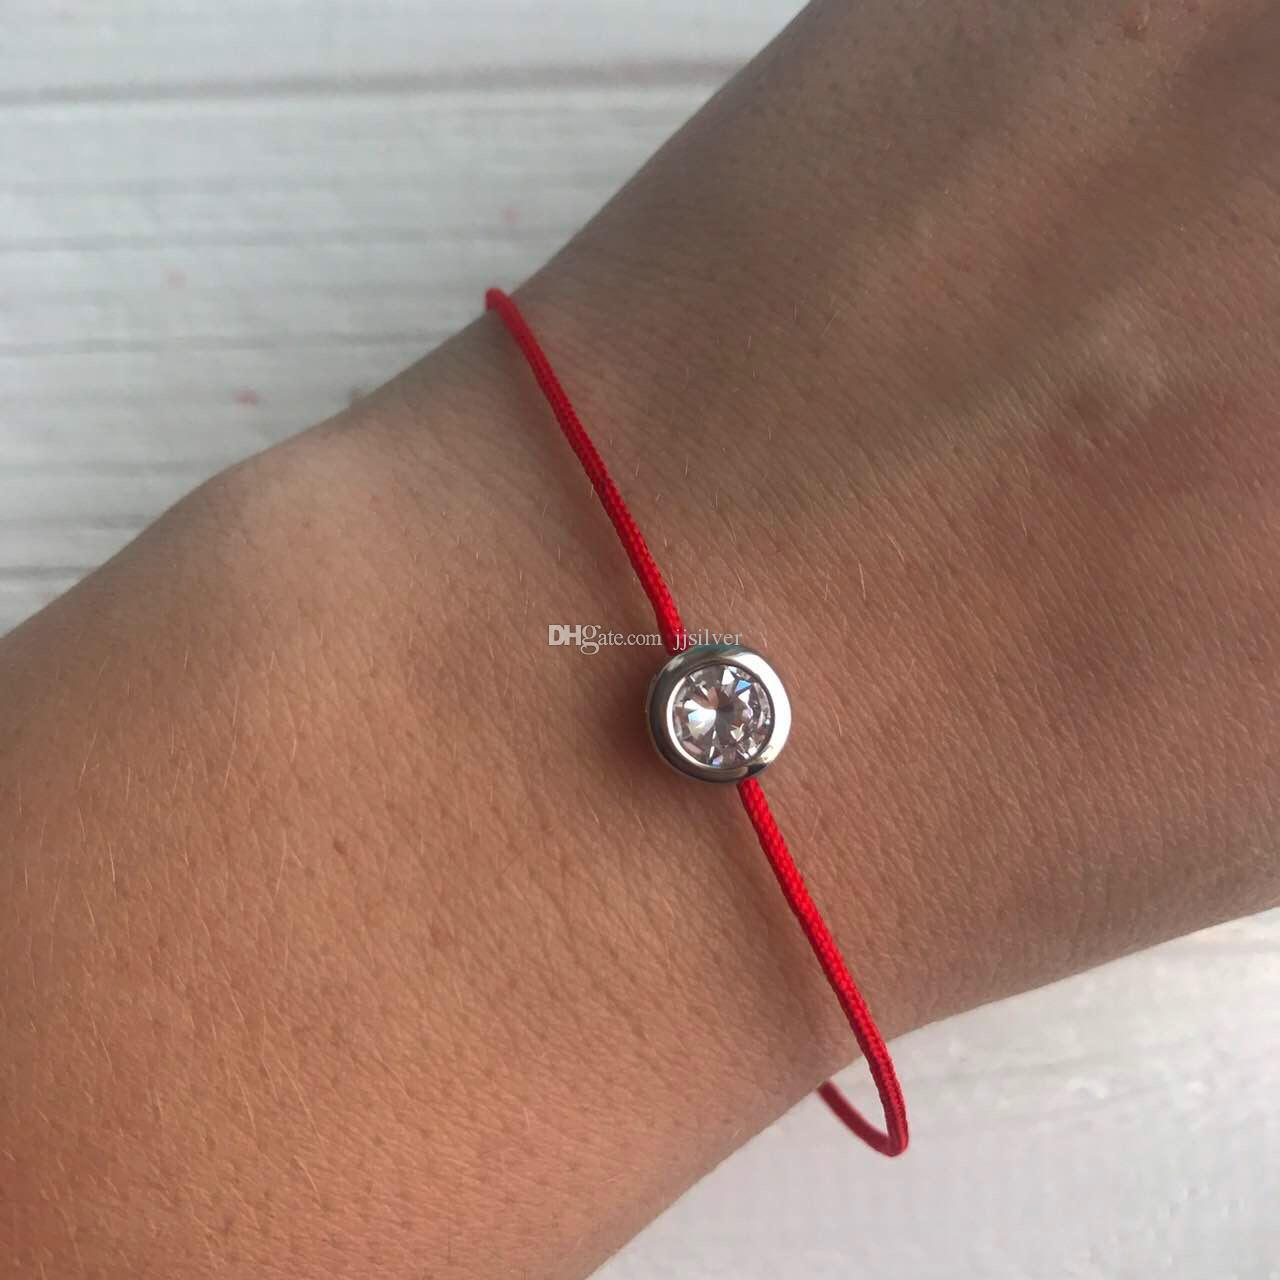 Red String Bracelet Meaning With Zircon 925 Sterling Silver Rope